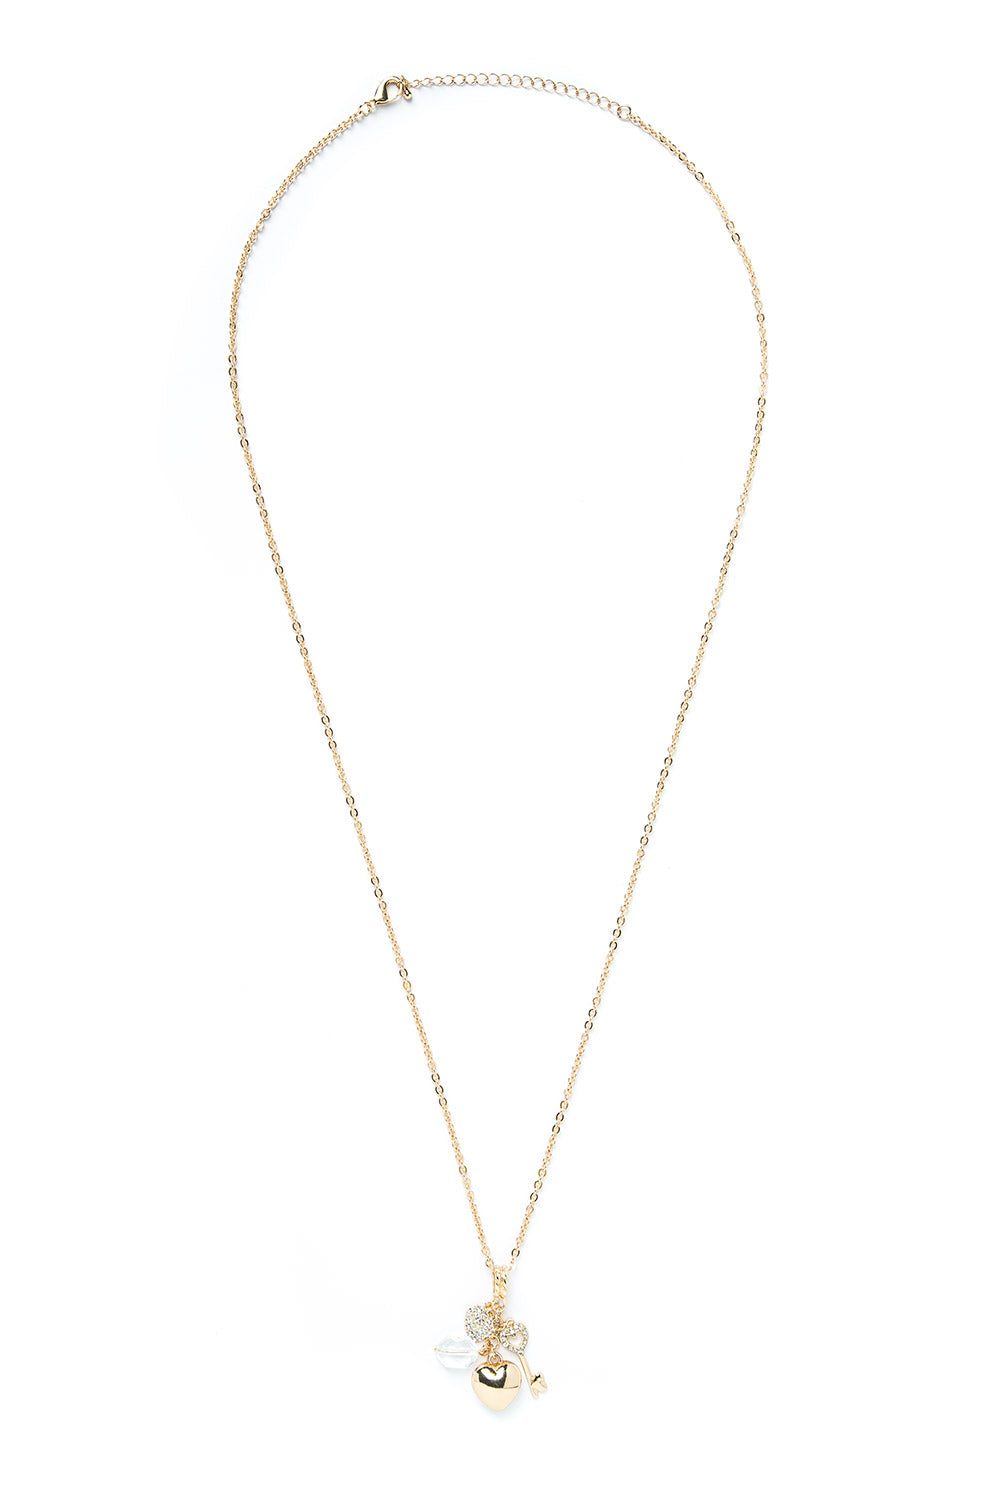 Type 1 Valentino Necklace